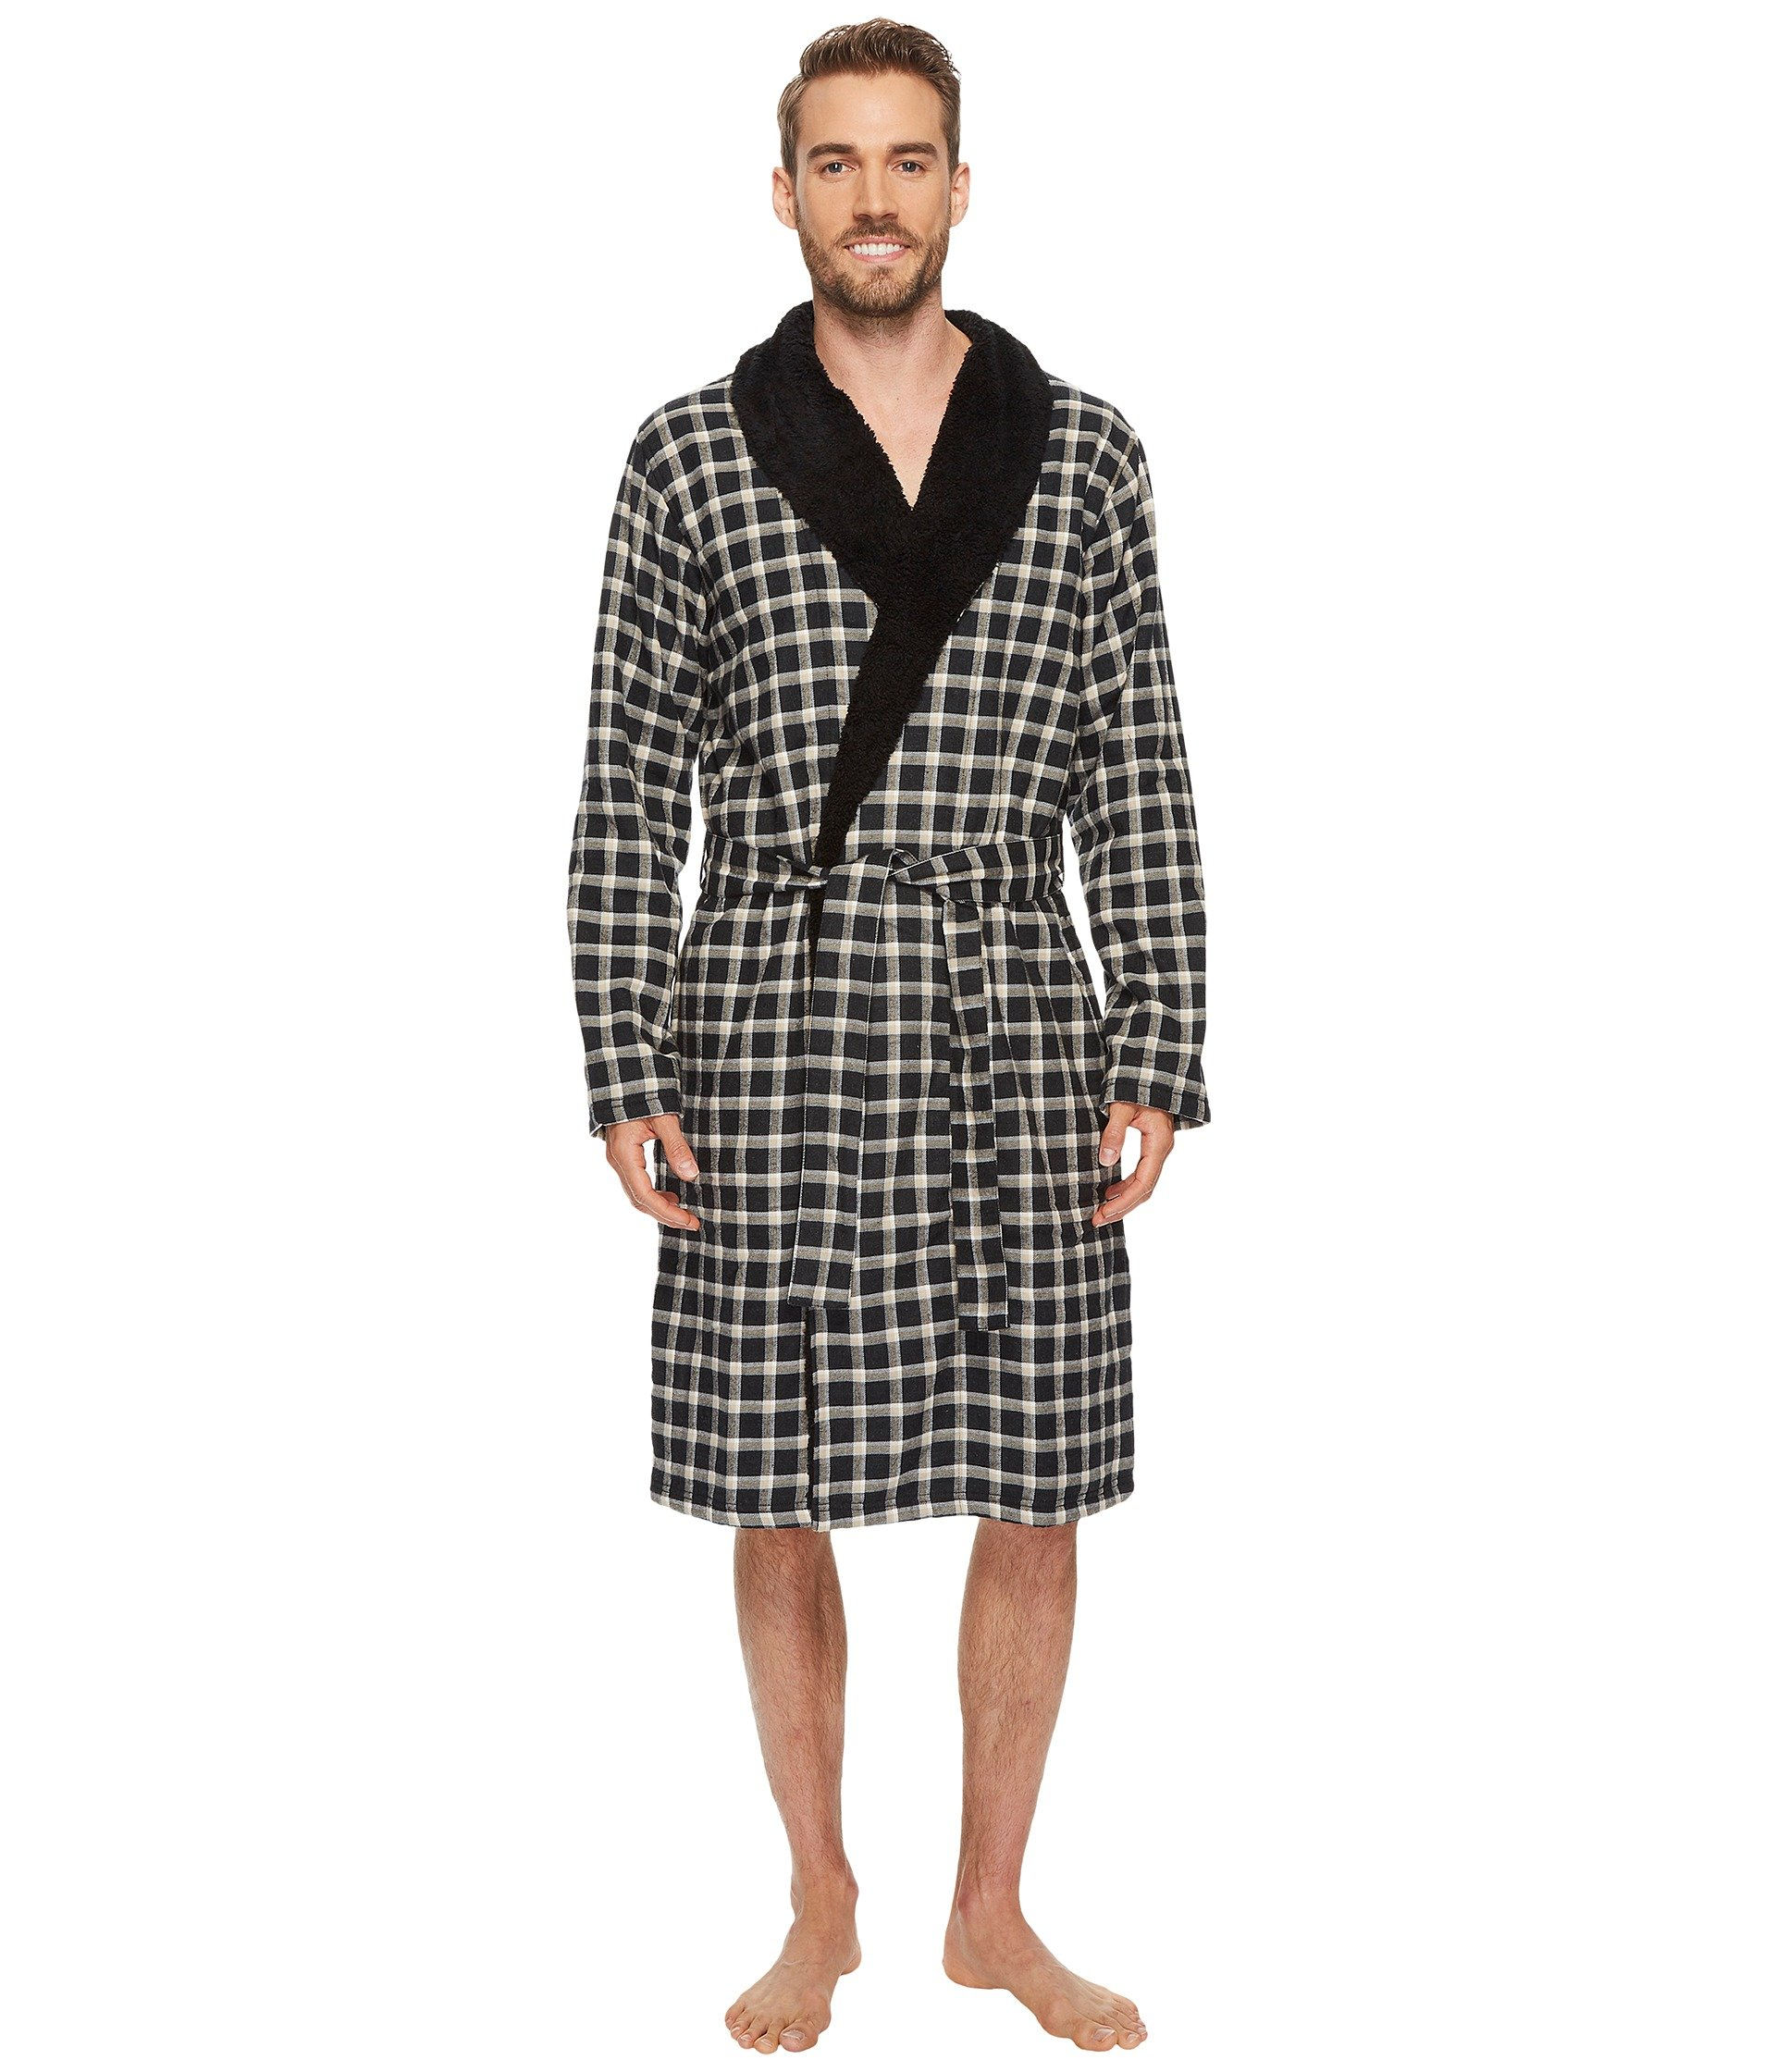 KALIB PLAID ROBE